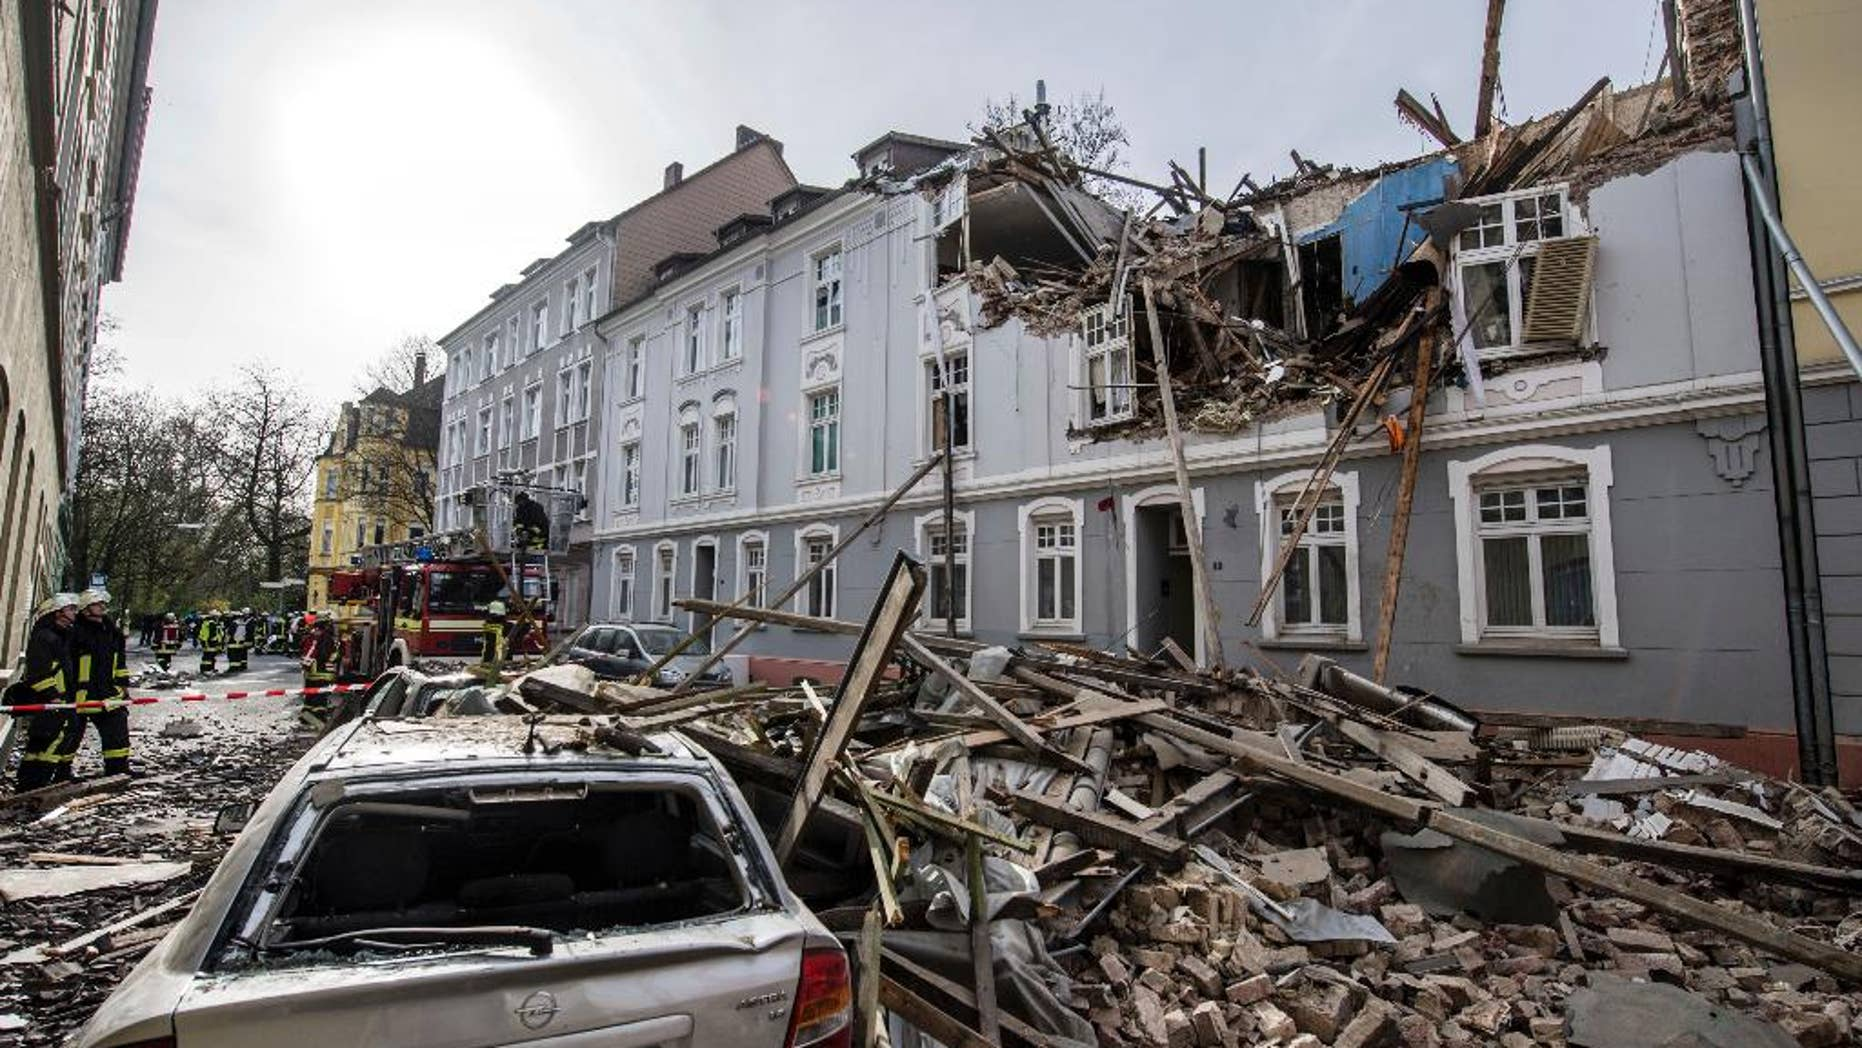 Debris sits on a street after an explosion in an  apartment building in Dortmund, western Germany, Friday, March 31, 2017. Police said one person was injured, another person is still missing. (Bernd Thissen/dpa via AP)